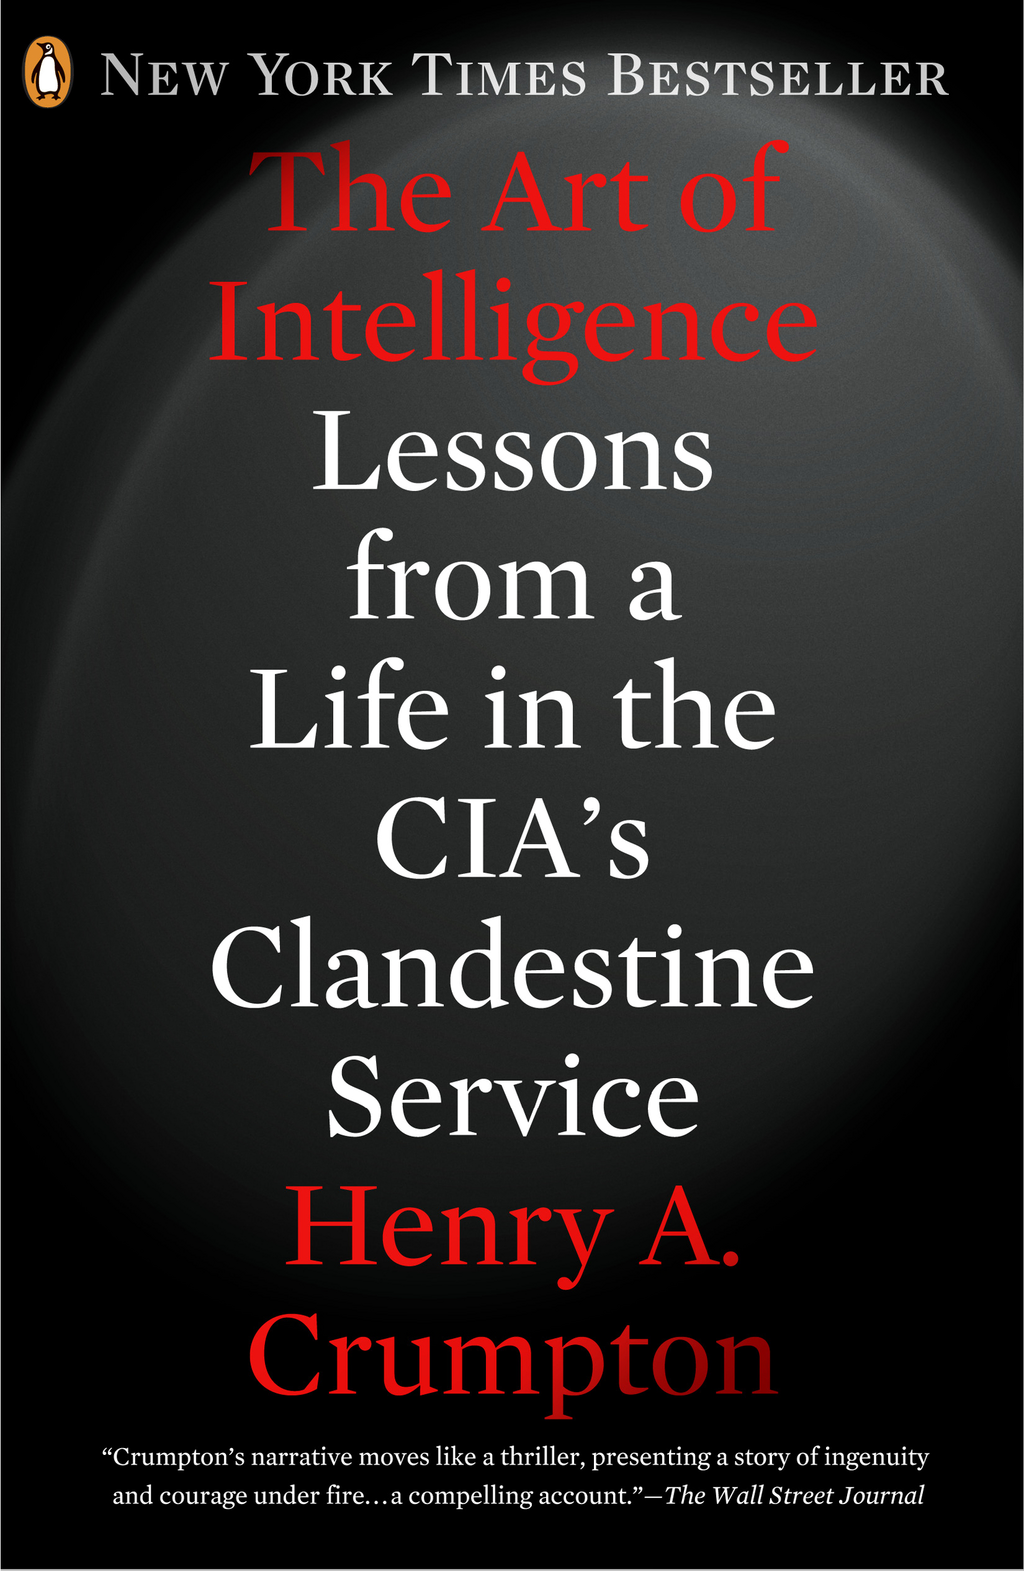 The Art of Intelligence